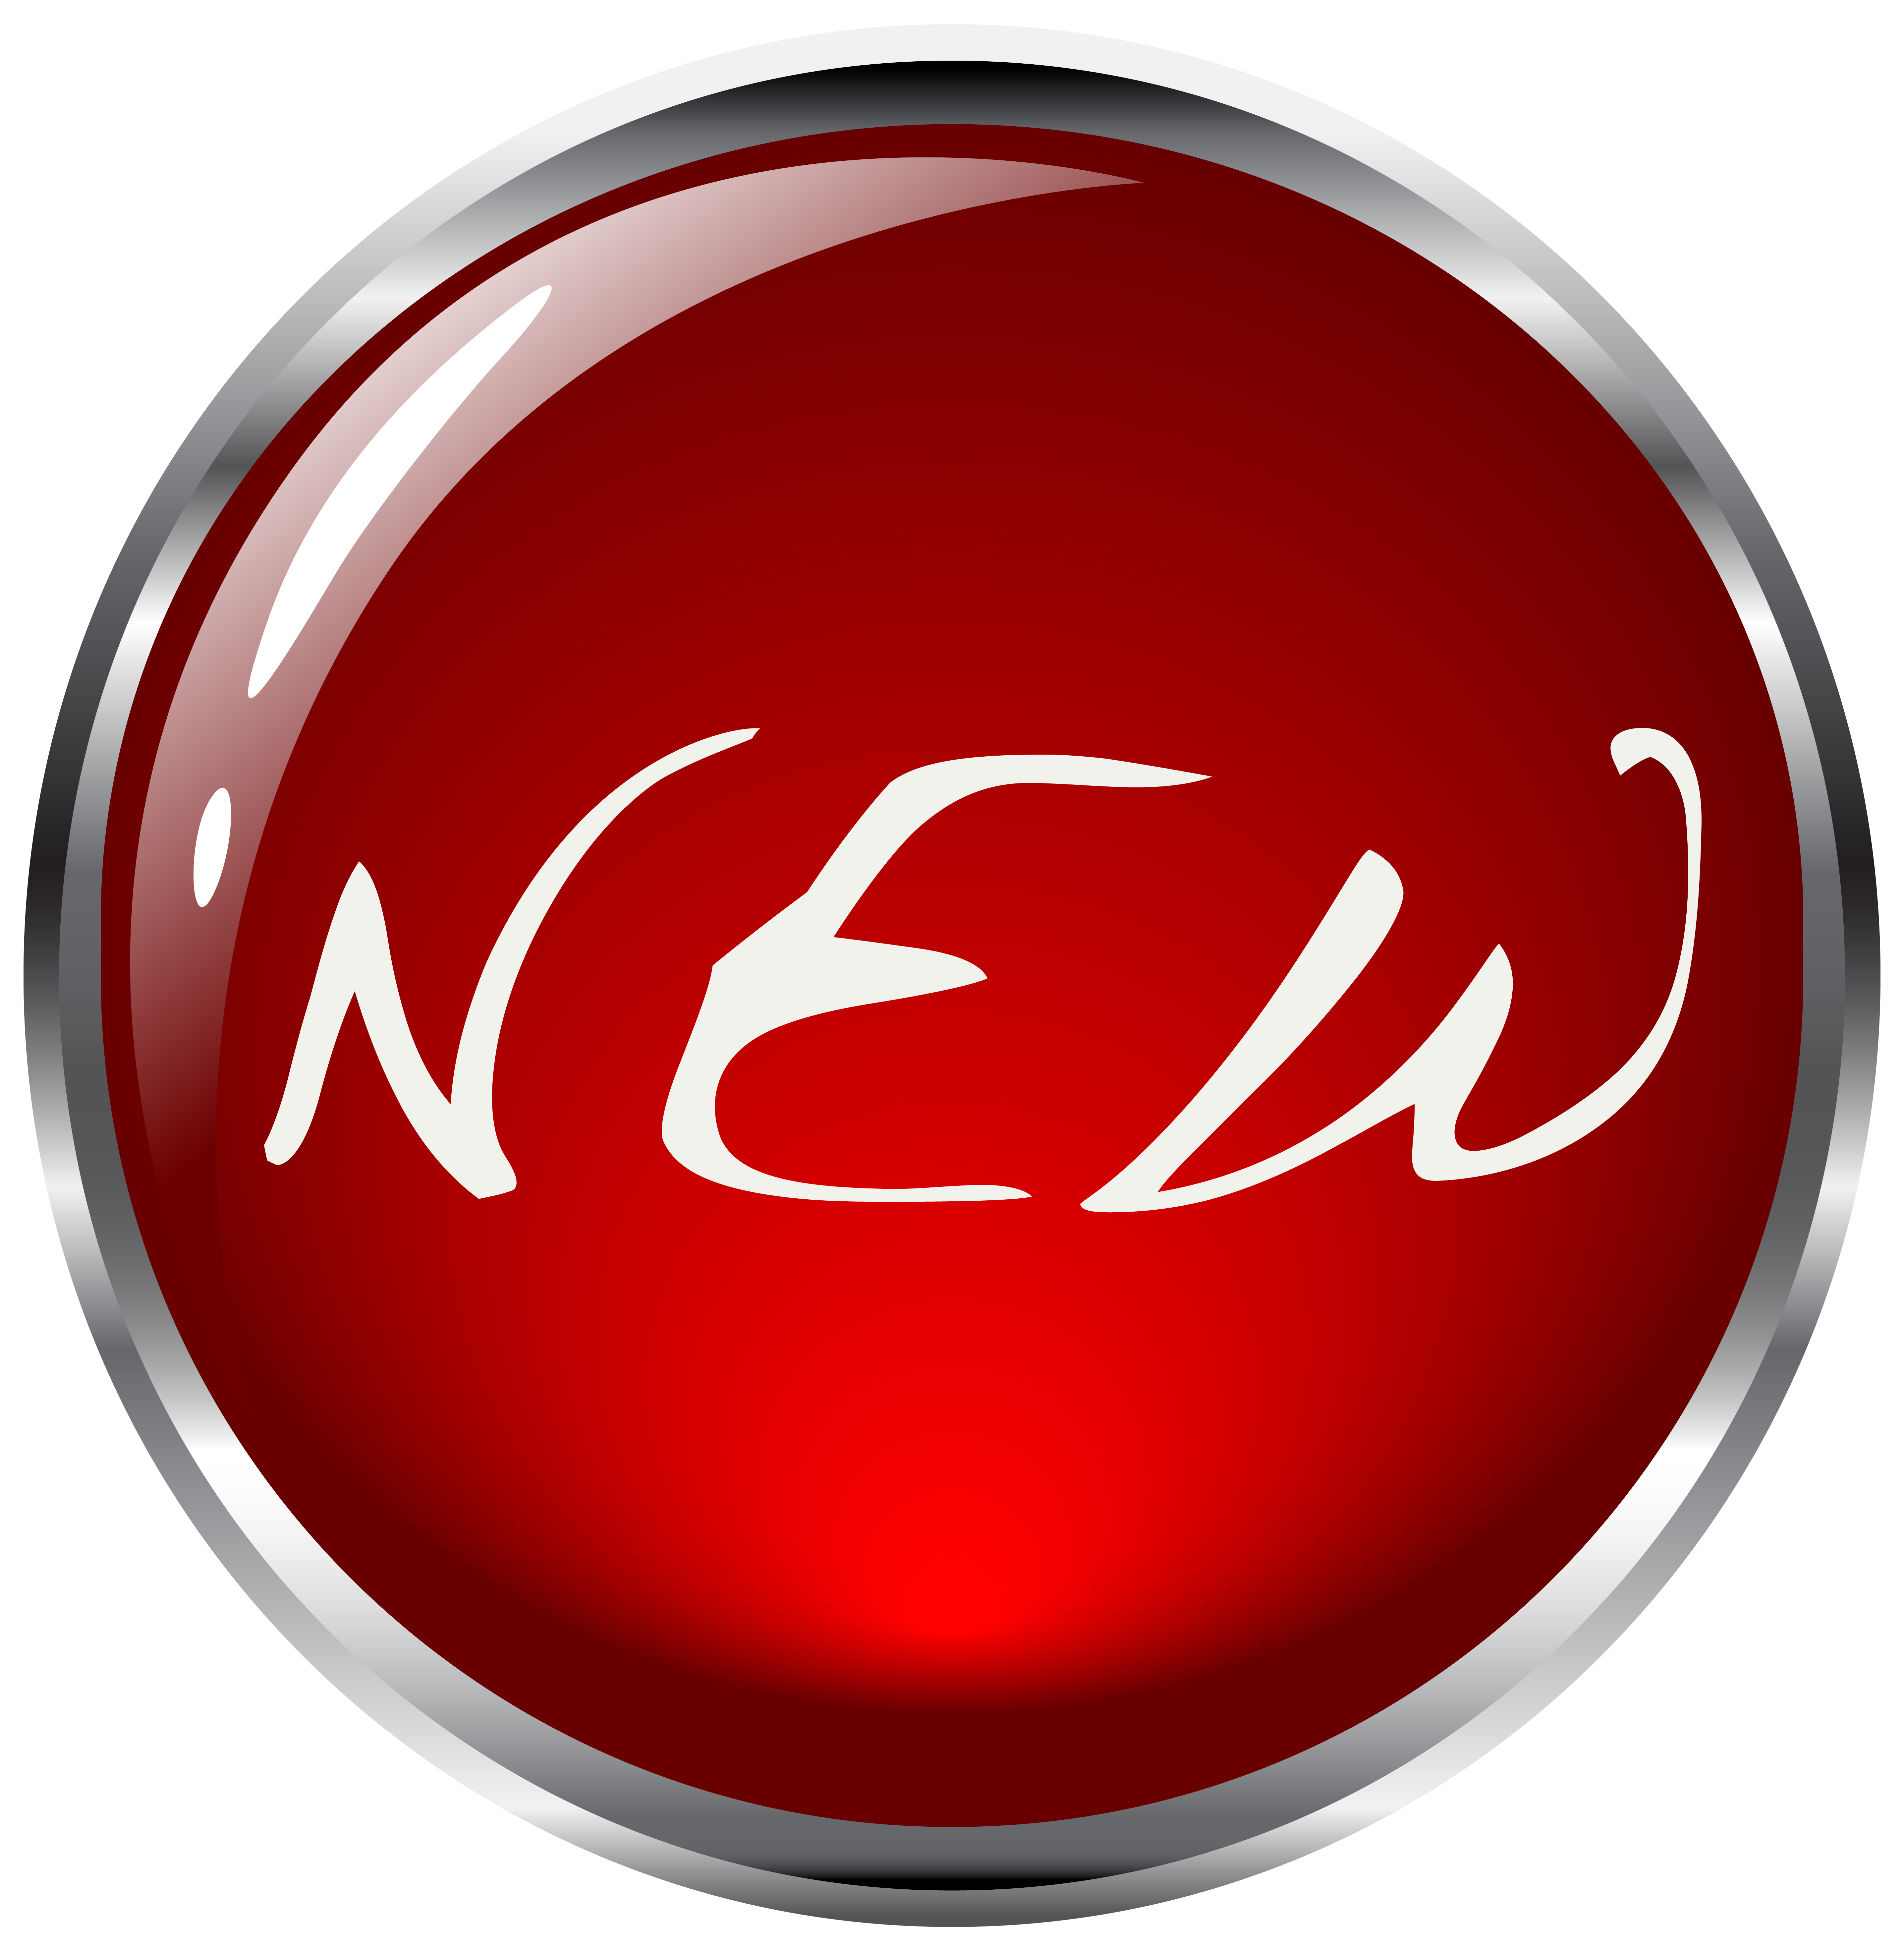 New! png label. New clip art image